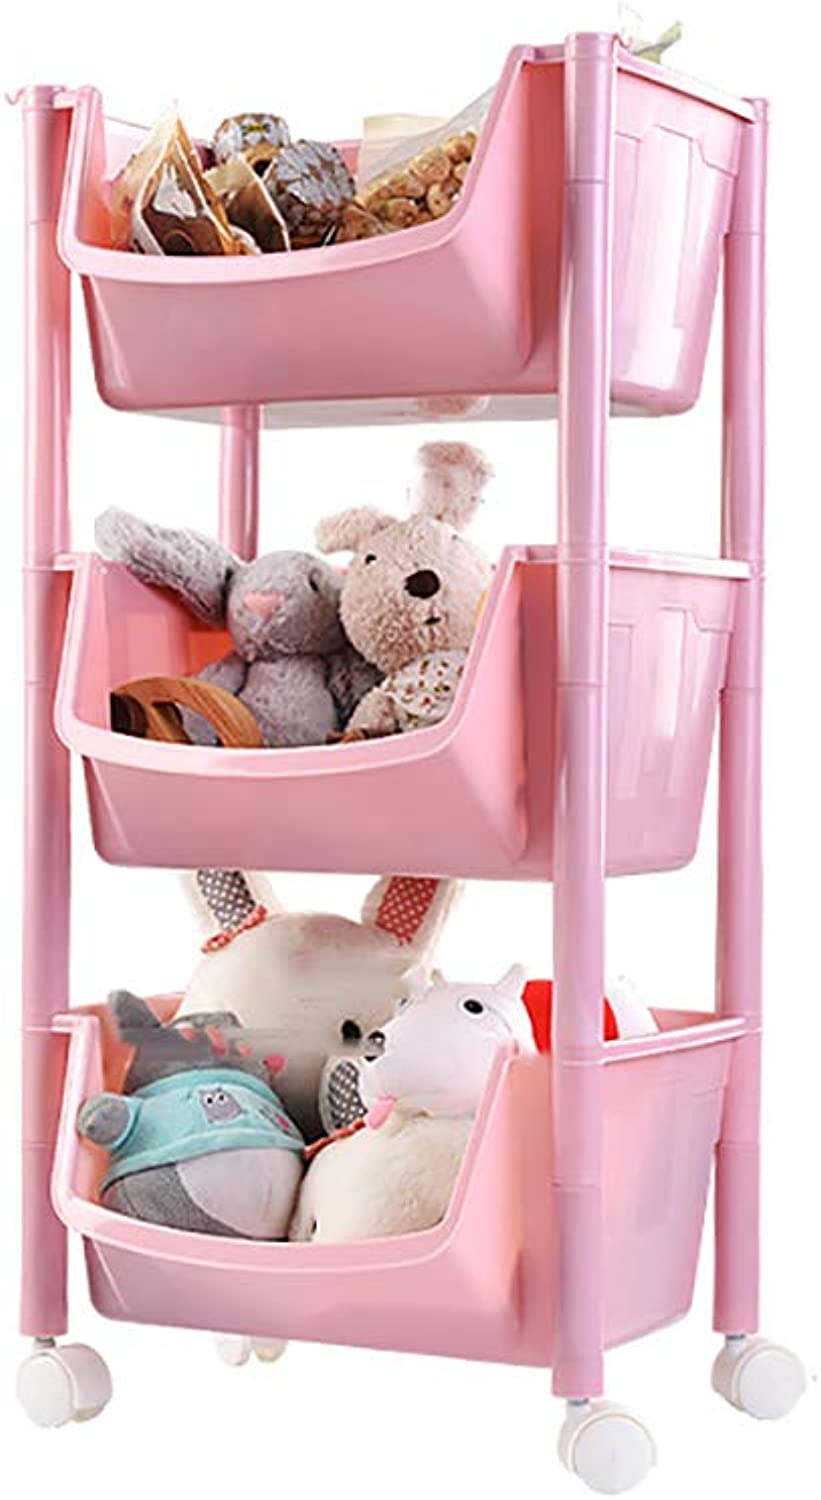 3 4 Tier Kitchen Storage Trolley with Wheels Plastic Fruit Vegetable Rack for Bathroom Multifunction Organizing Pink (Size   35.5  29.5  64.5cm)